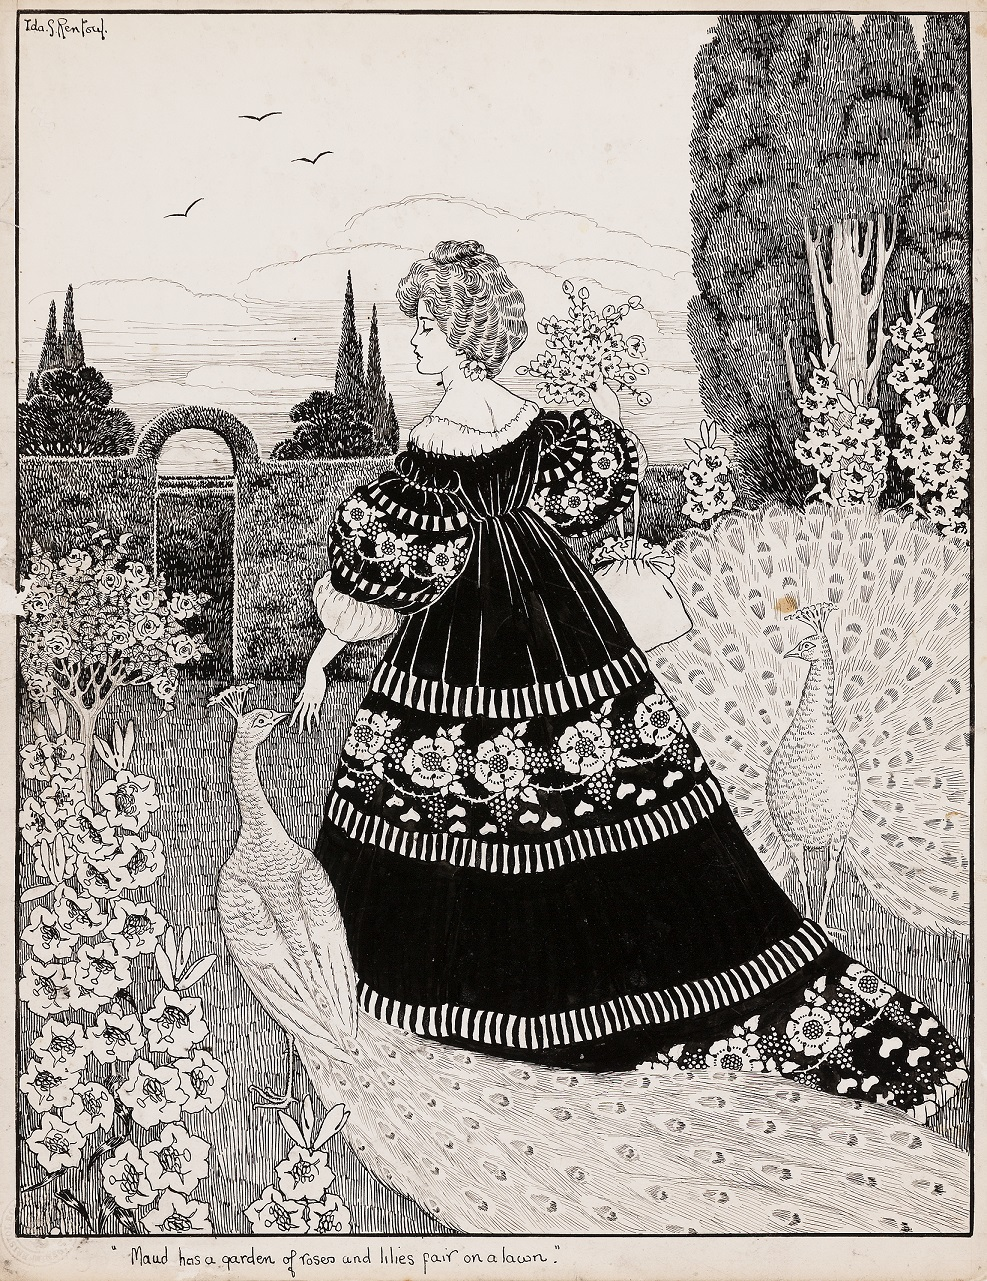 MAUD HAS A GARDEN OF ROSES AND LILIES FAIR ON A LAWN C1906, ink and pencil on card, 32.0 x 25.5 cm